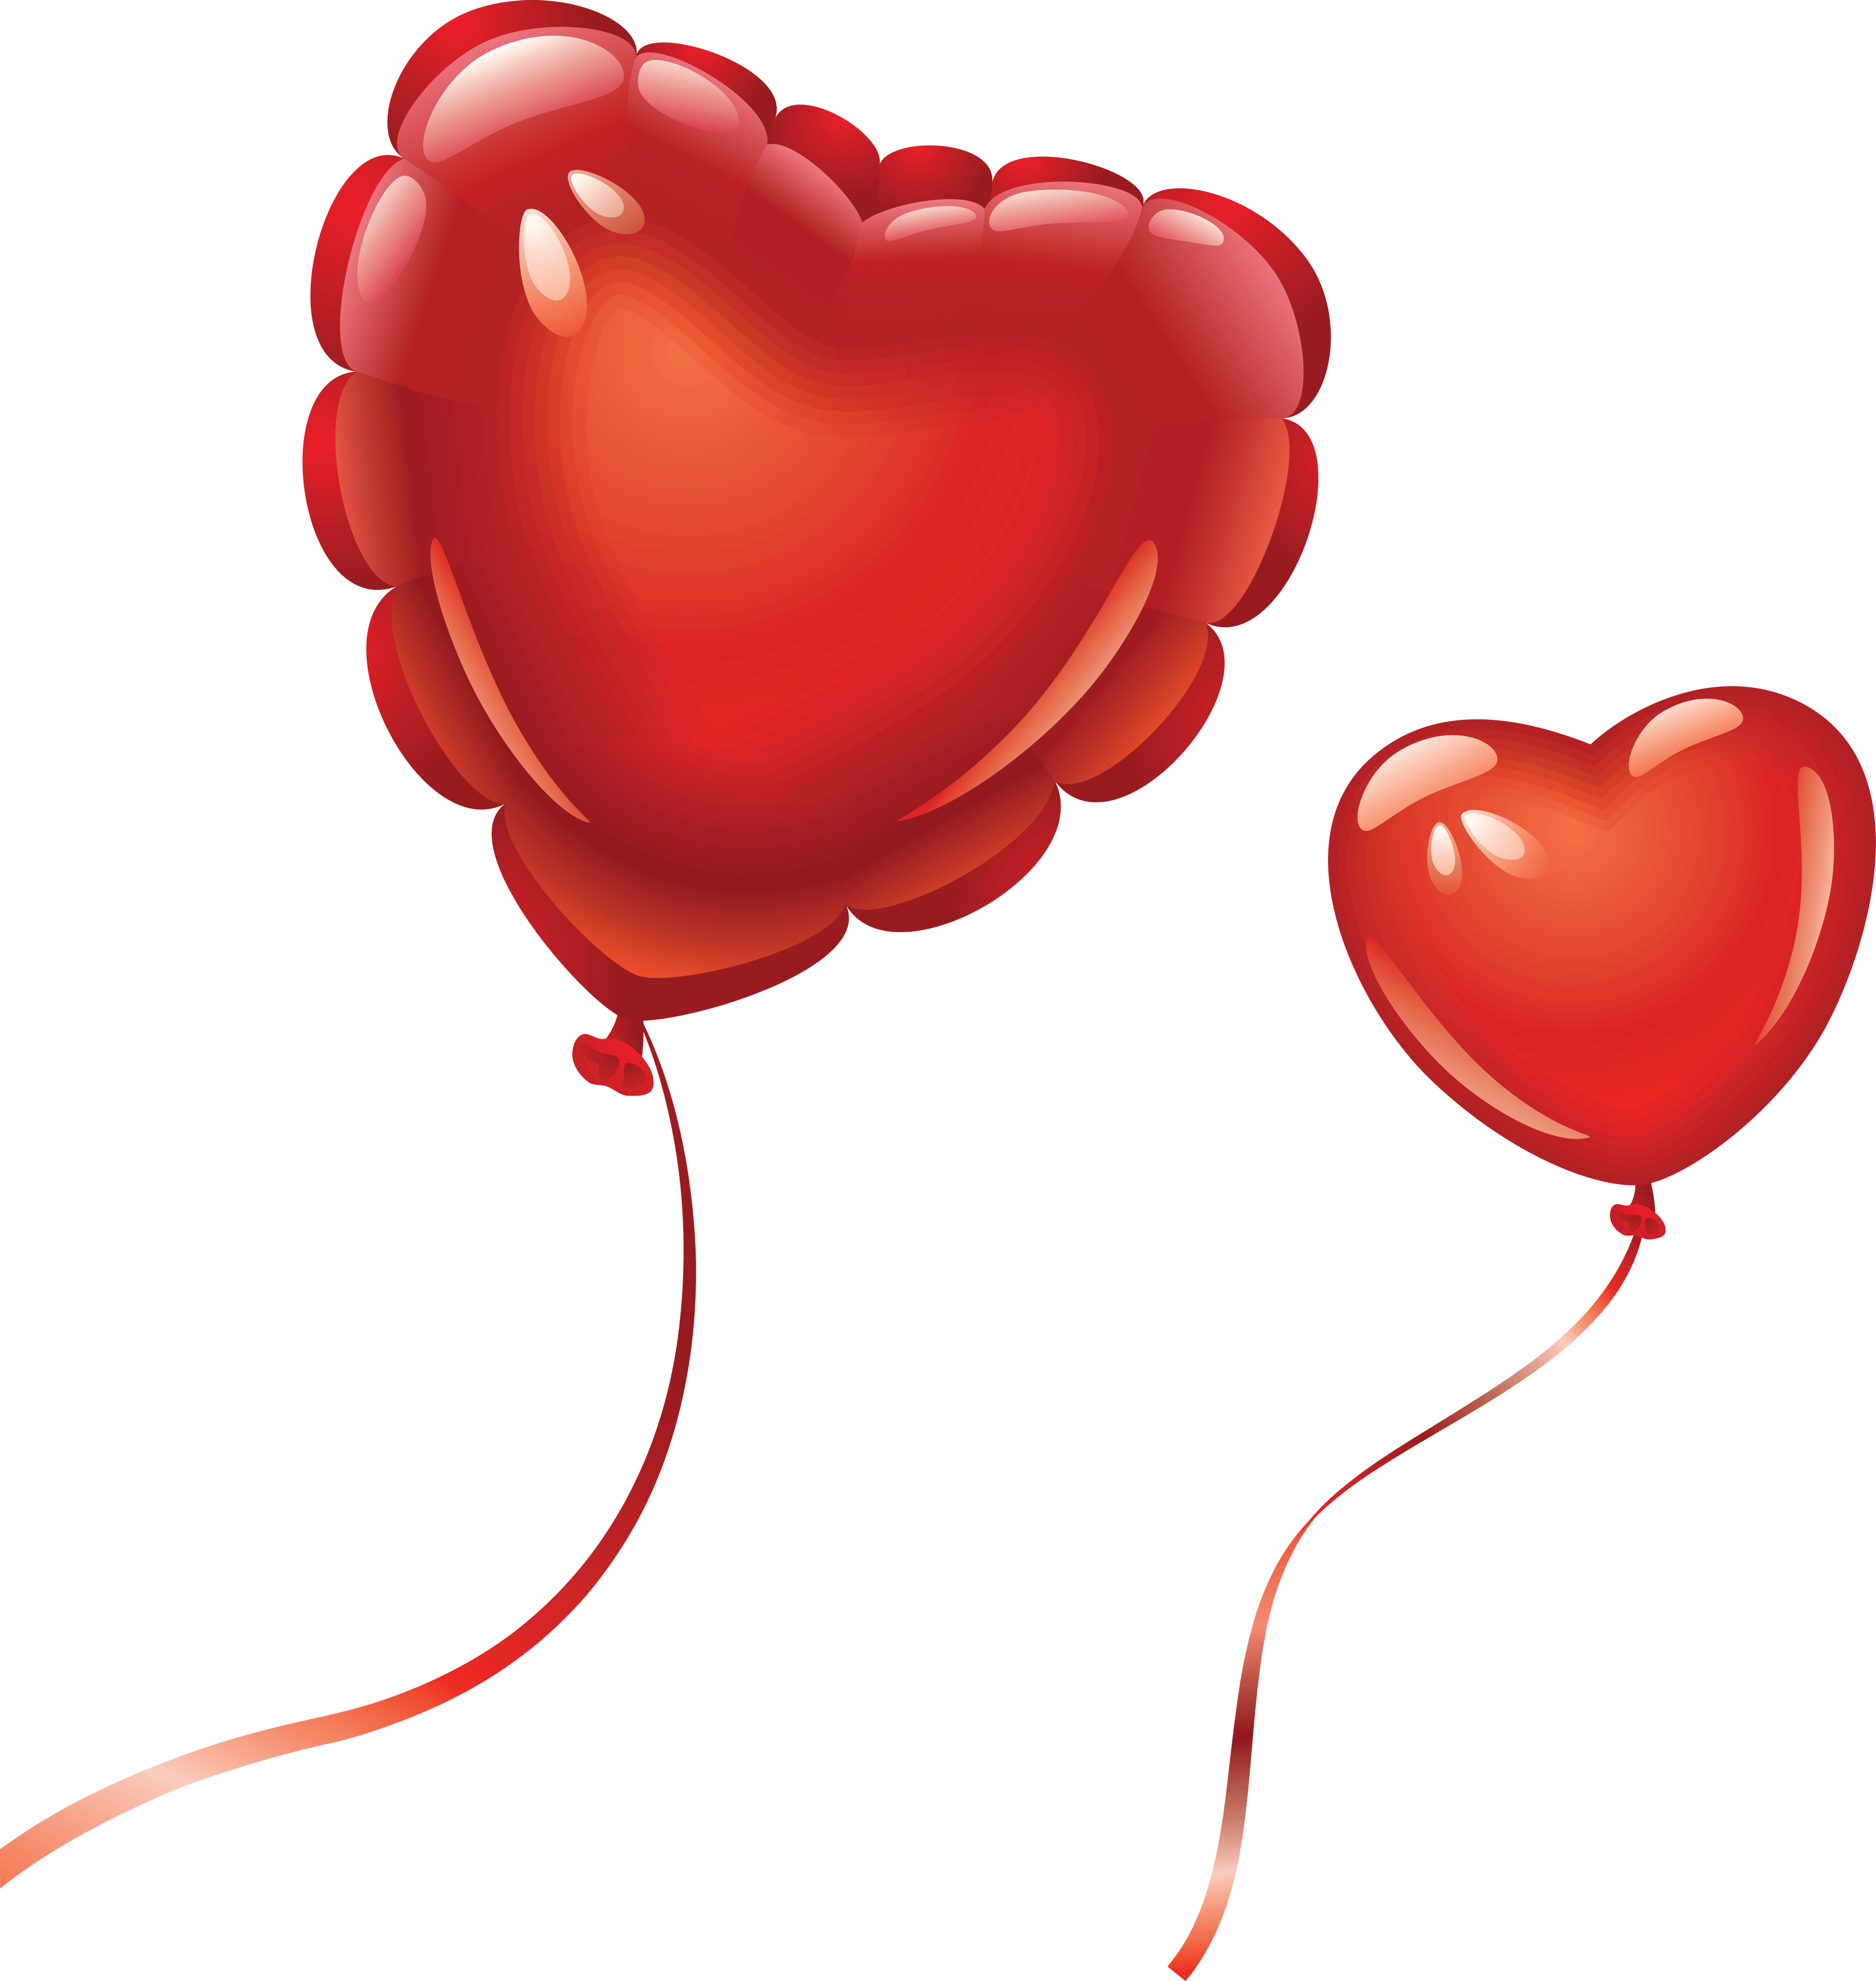 Heart Balloon Png Image Download Heart Balloons PNG Image